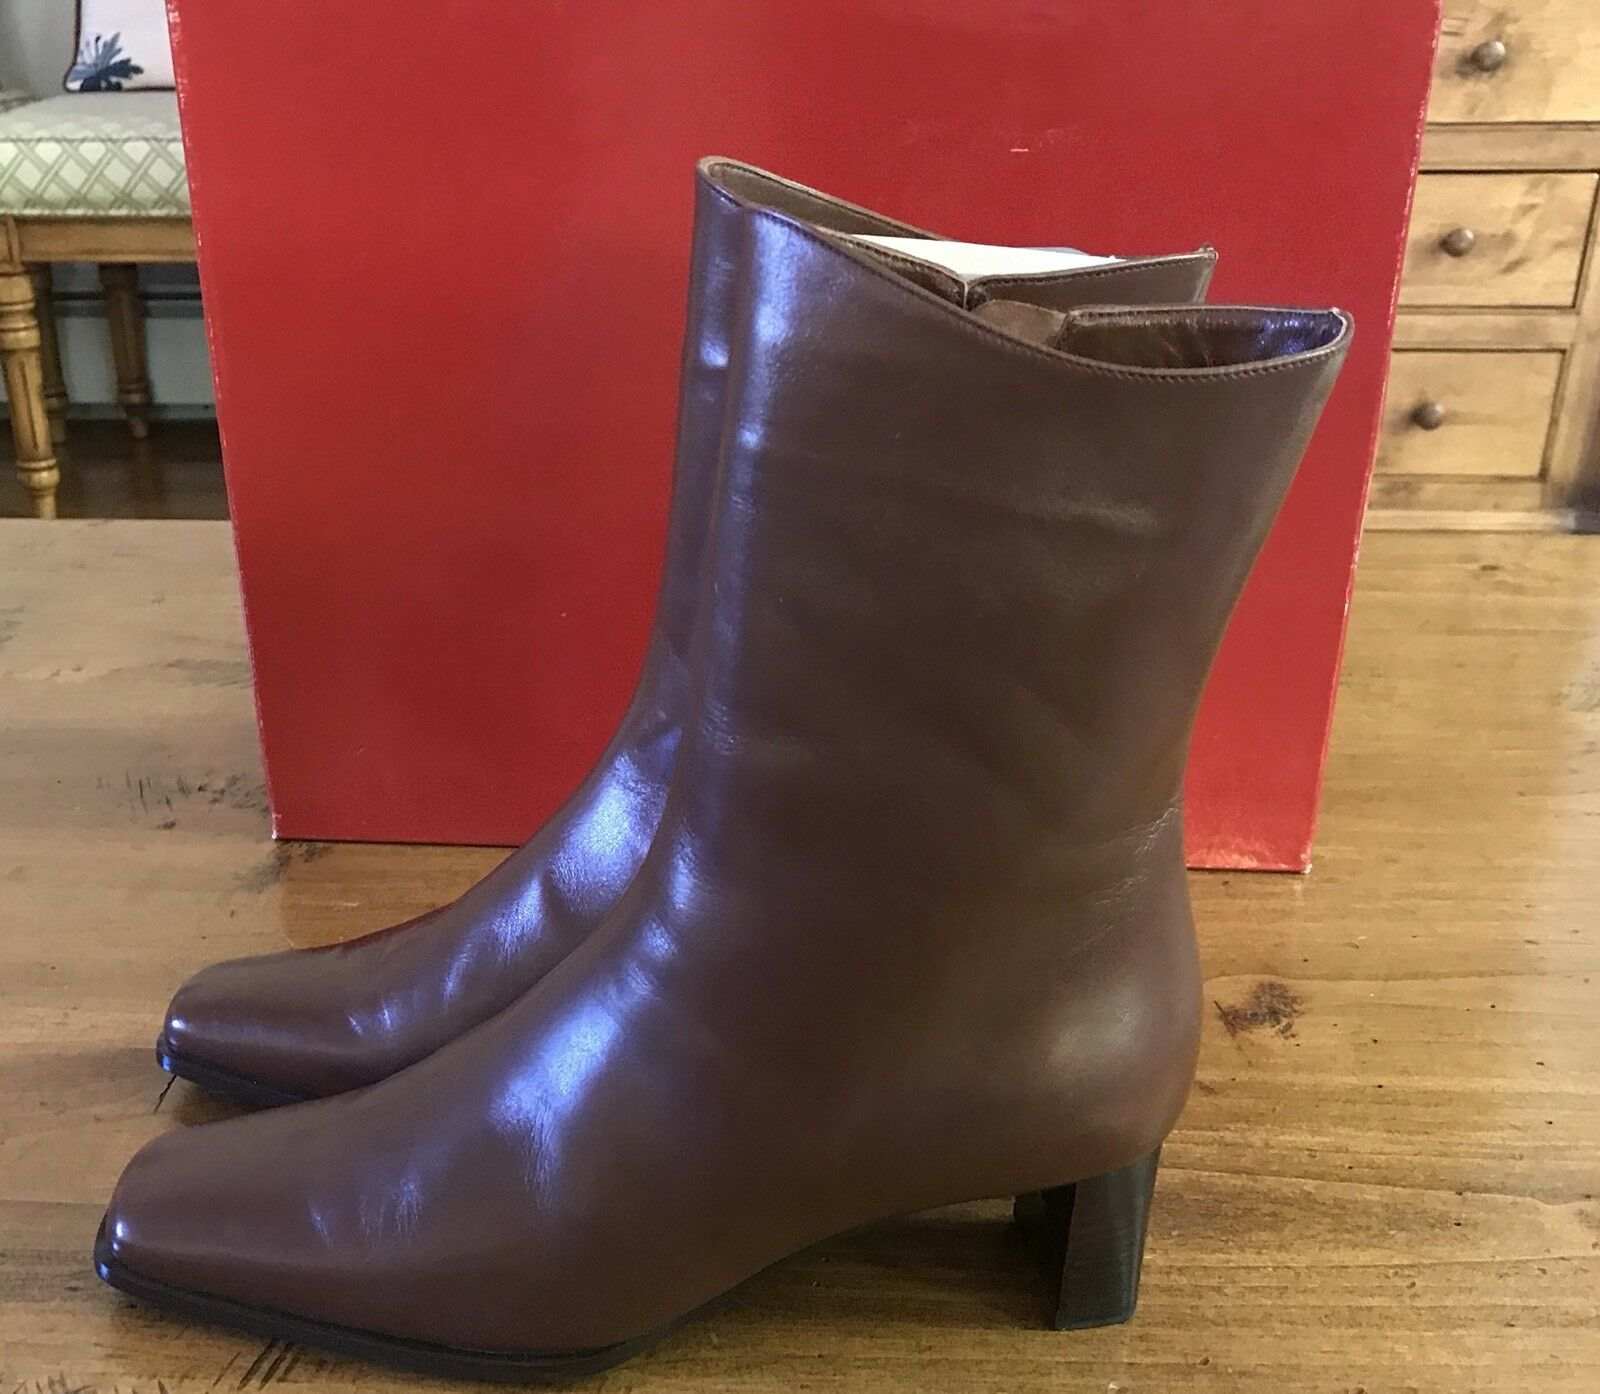 Salmaso Donna Soft Brown Leather Above Ankle Boots Zip EU Italy 37.5 US 7 Made Italy EU 1b6816